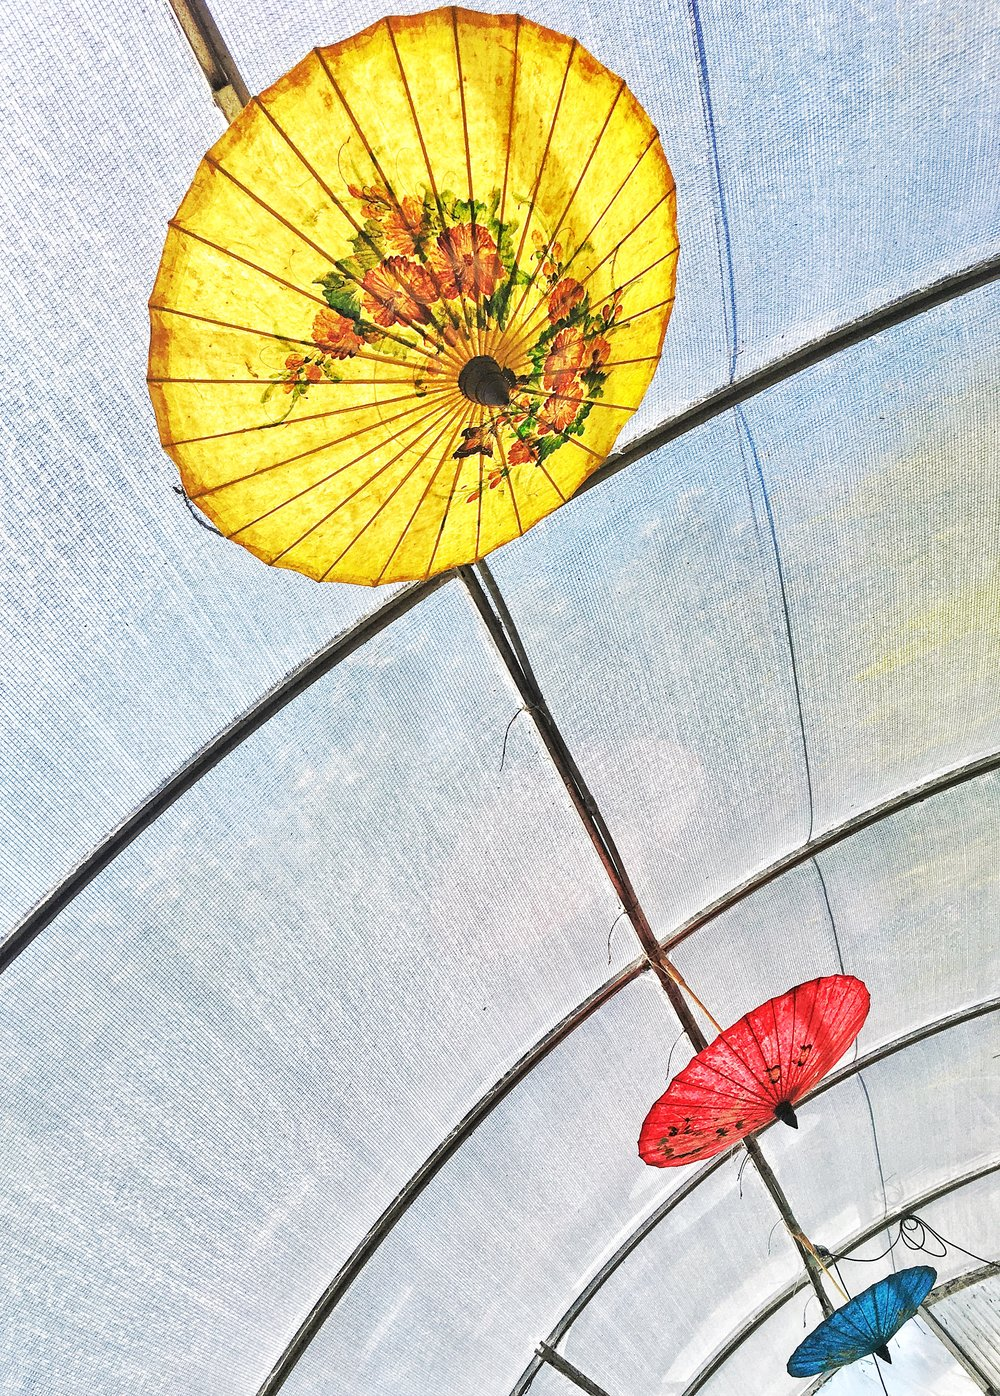 Primary color parasols